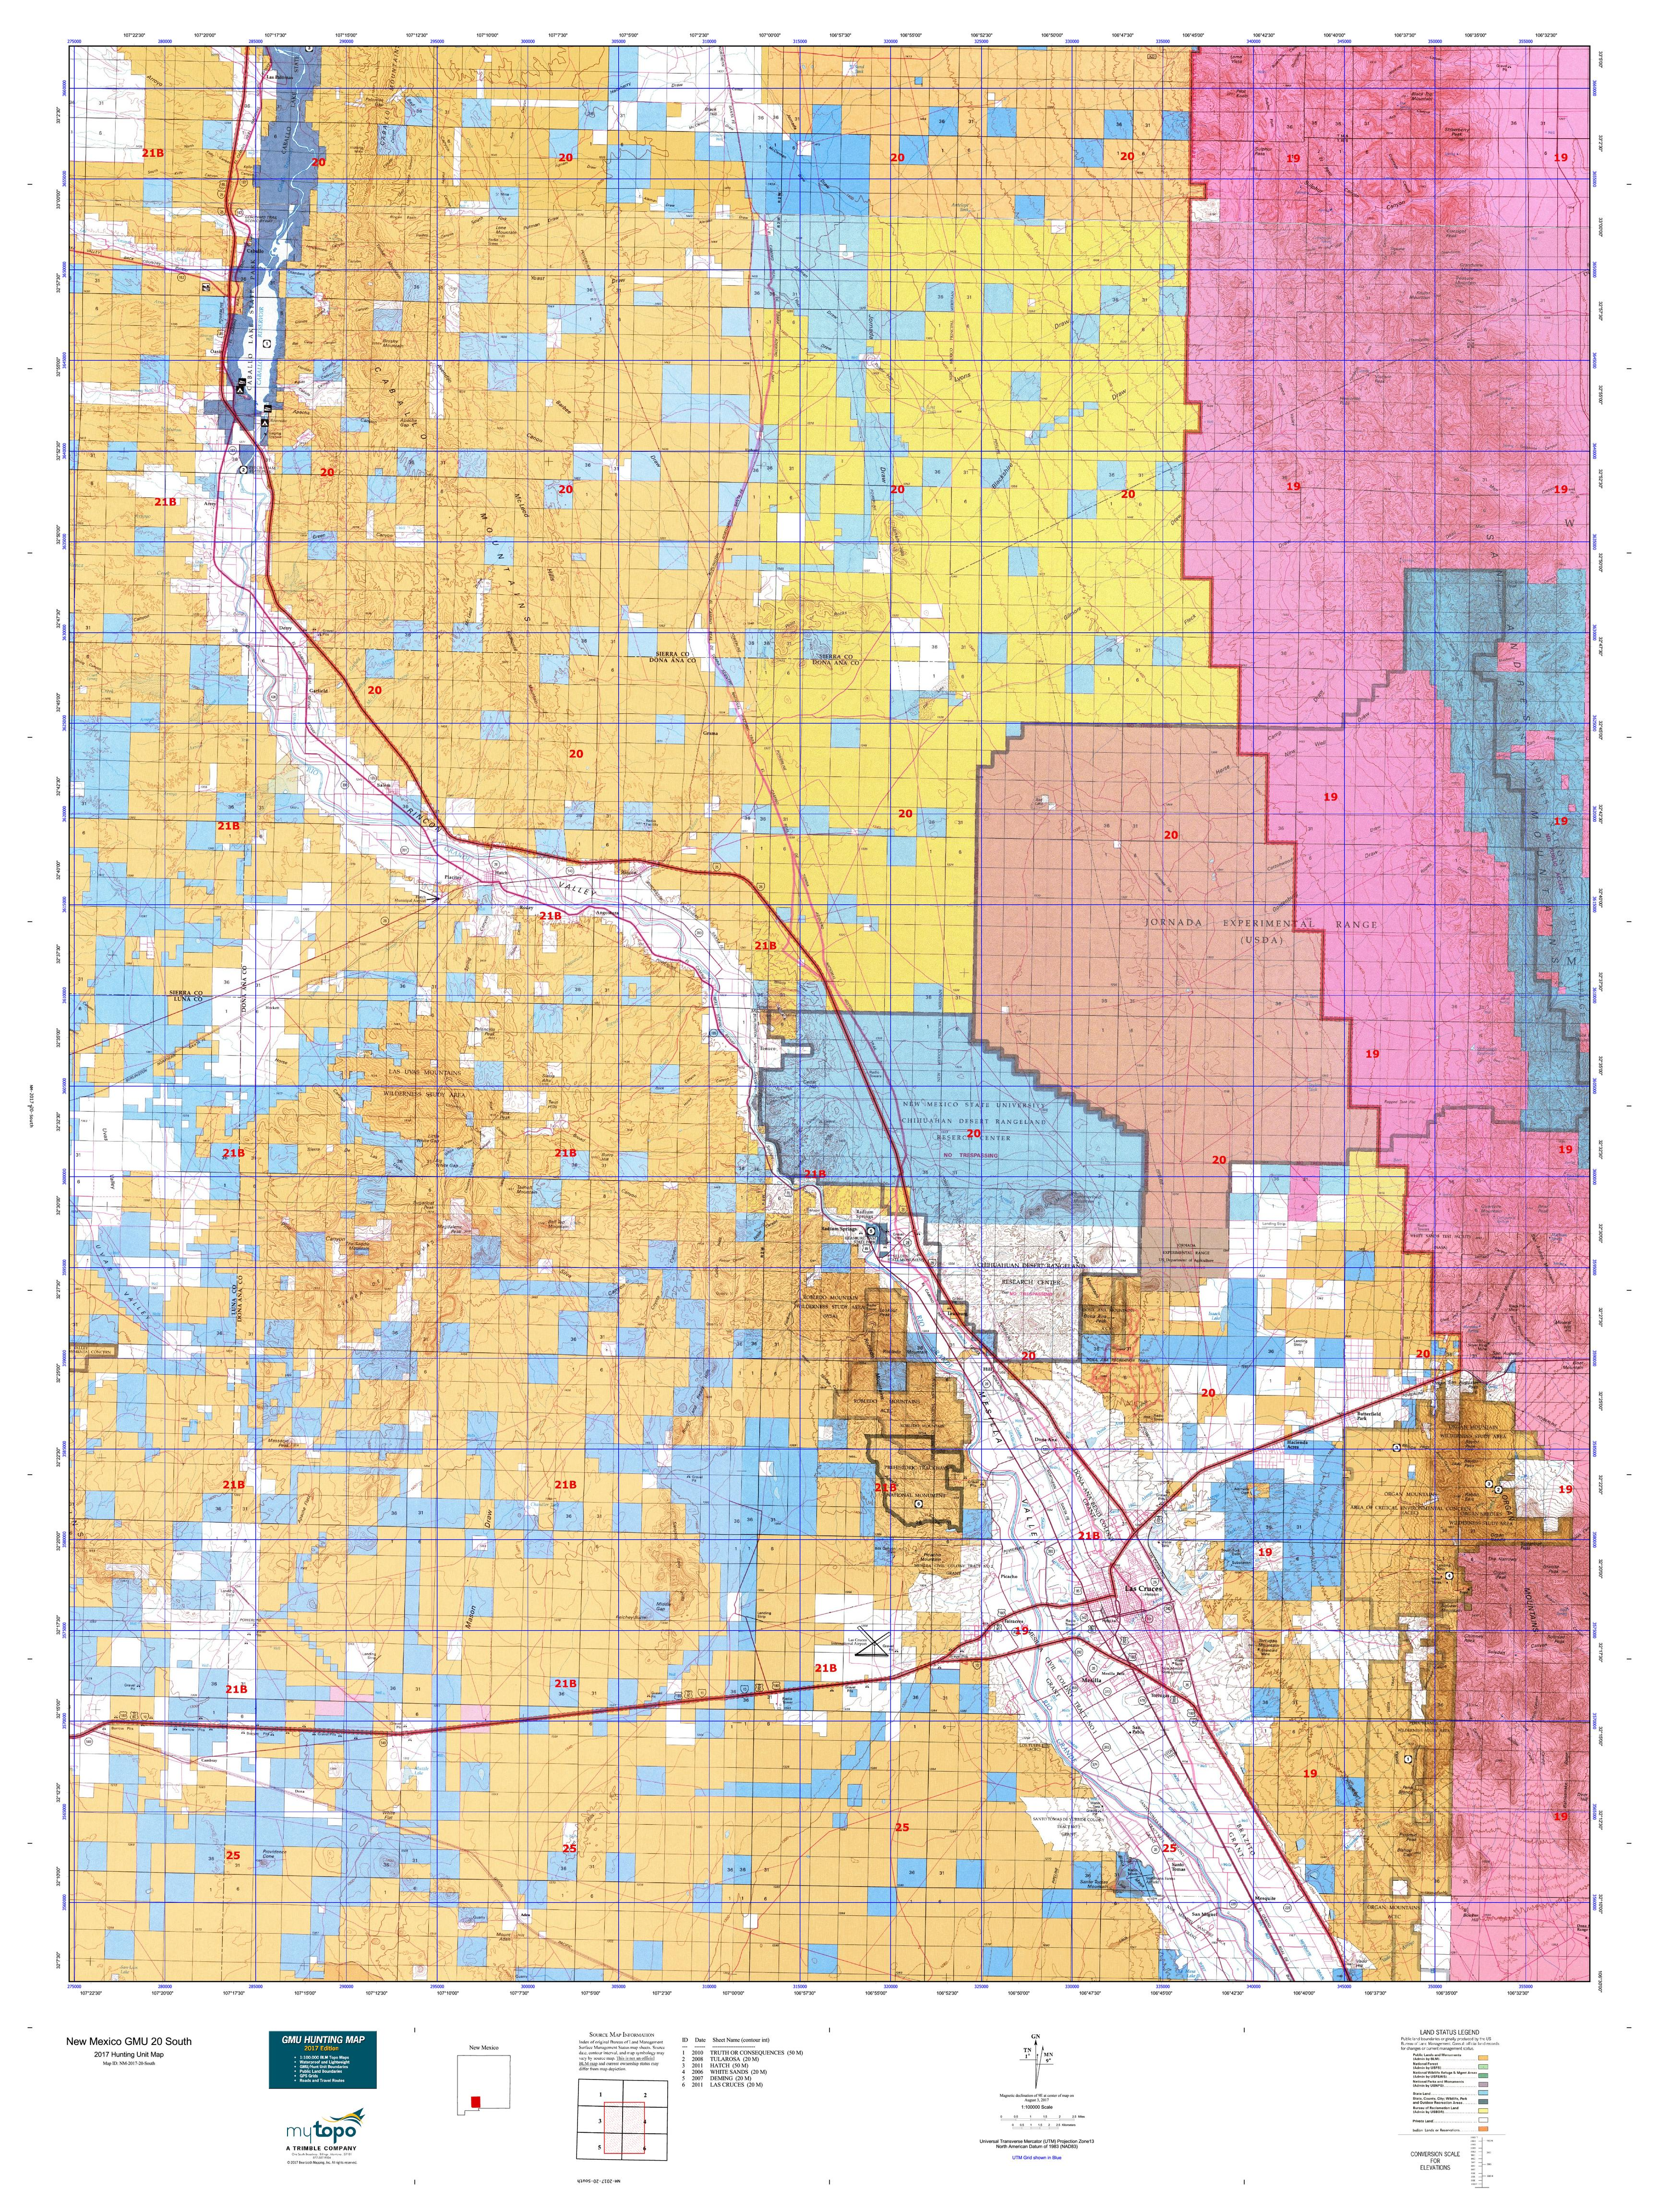 New Mexico GMU North Map MyTopo - Topographical map of new mexico